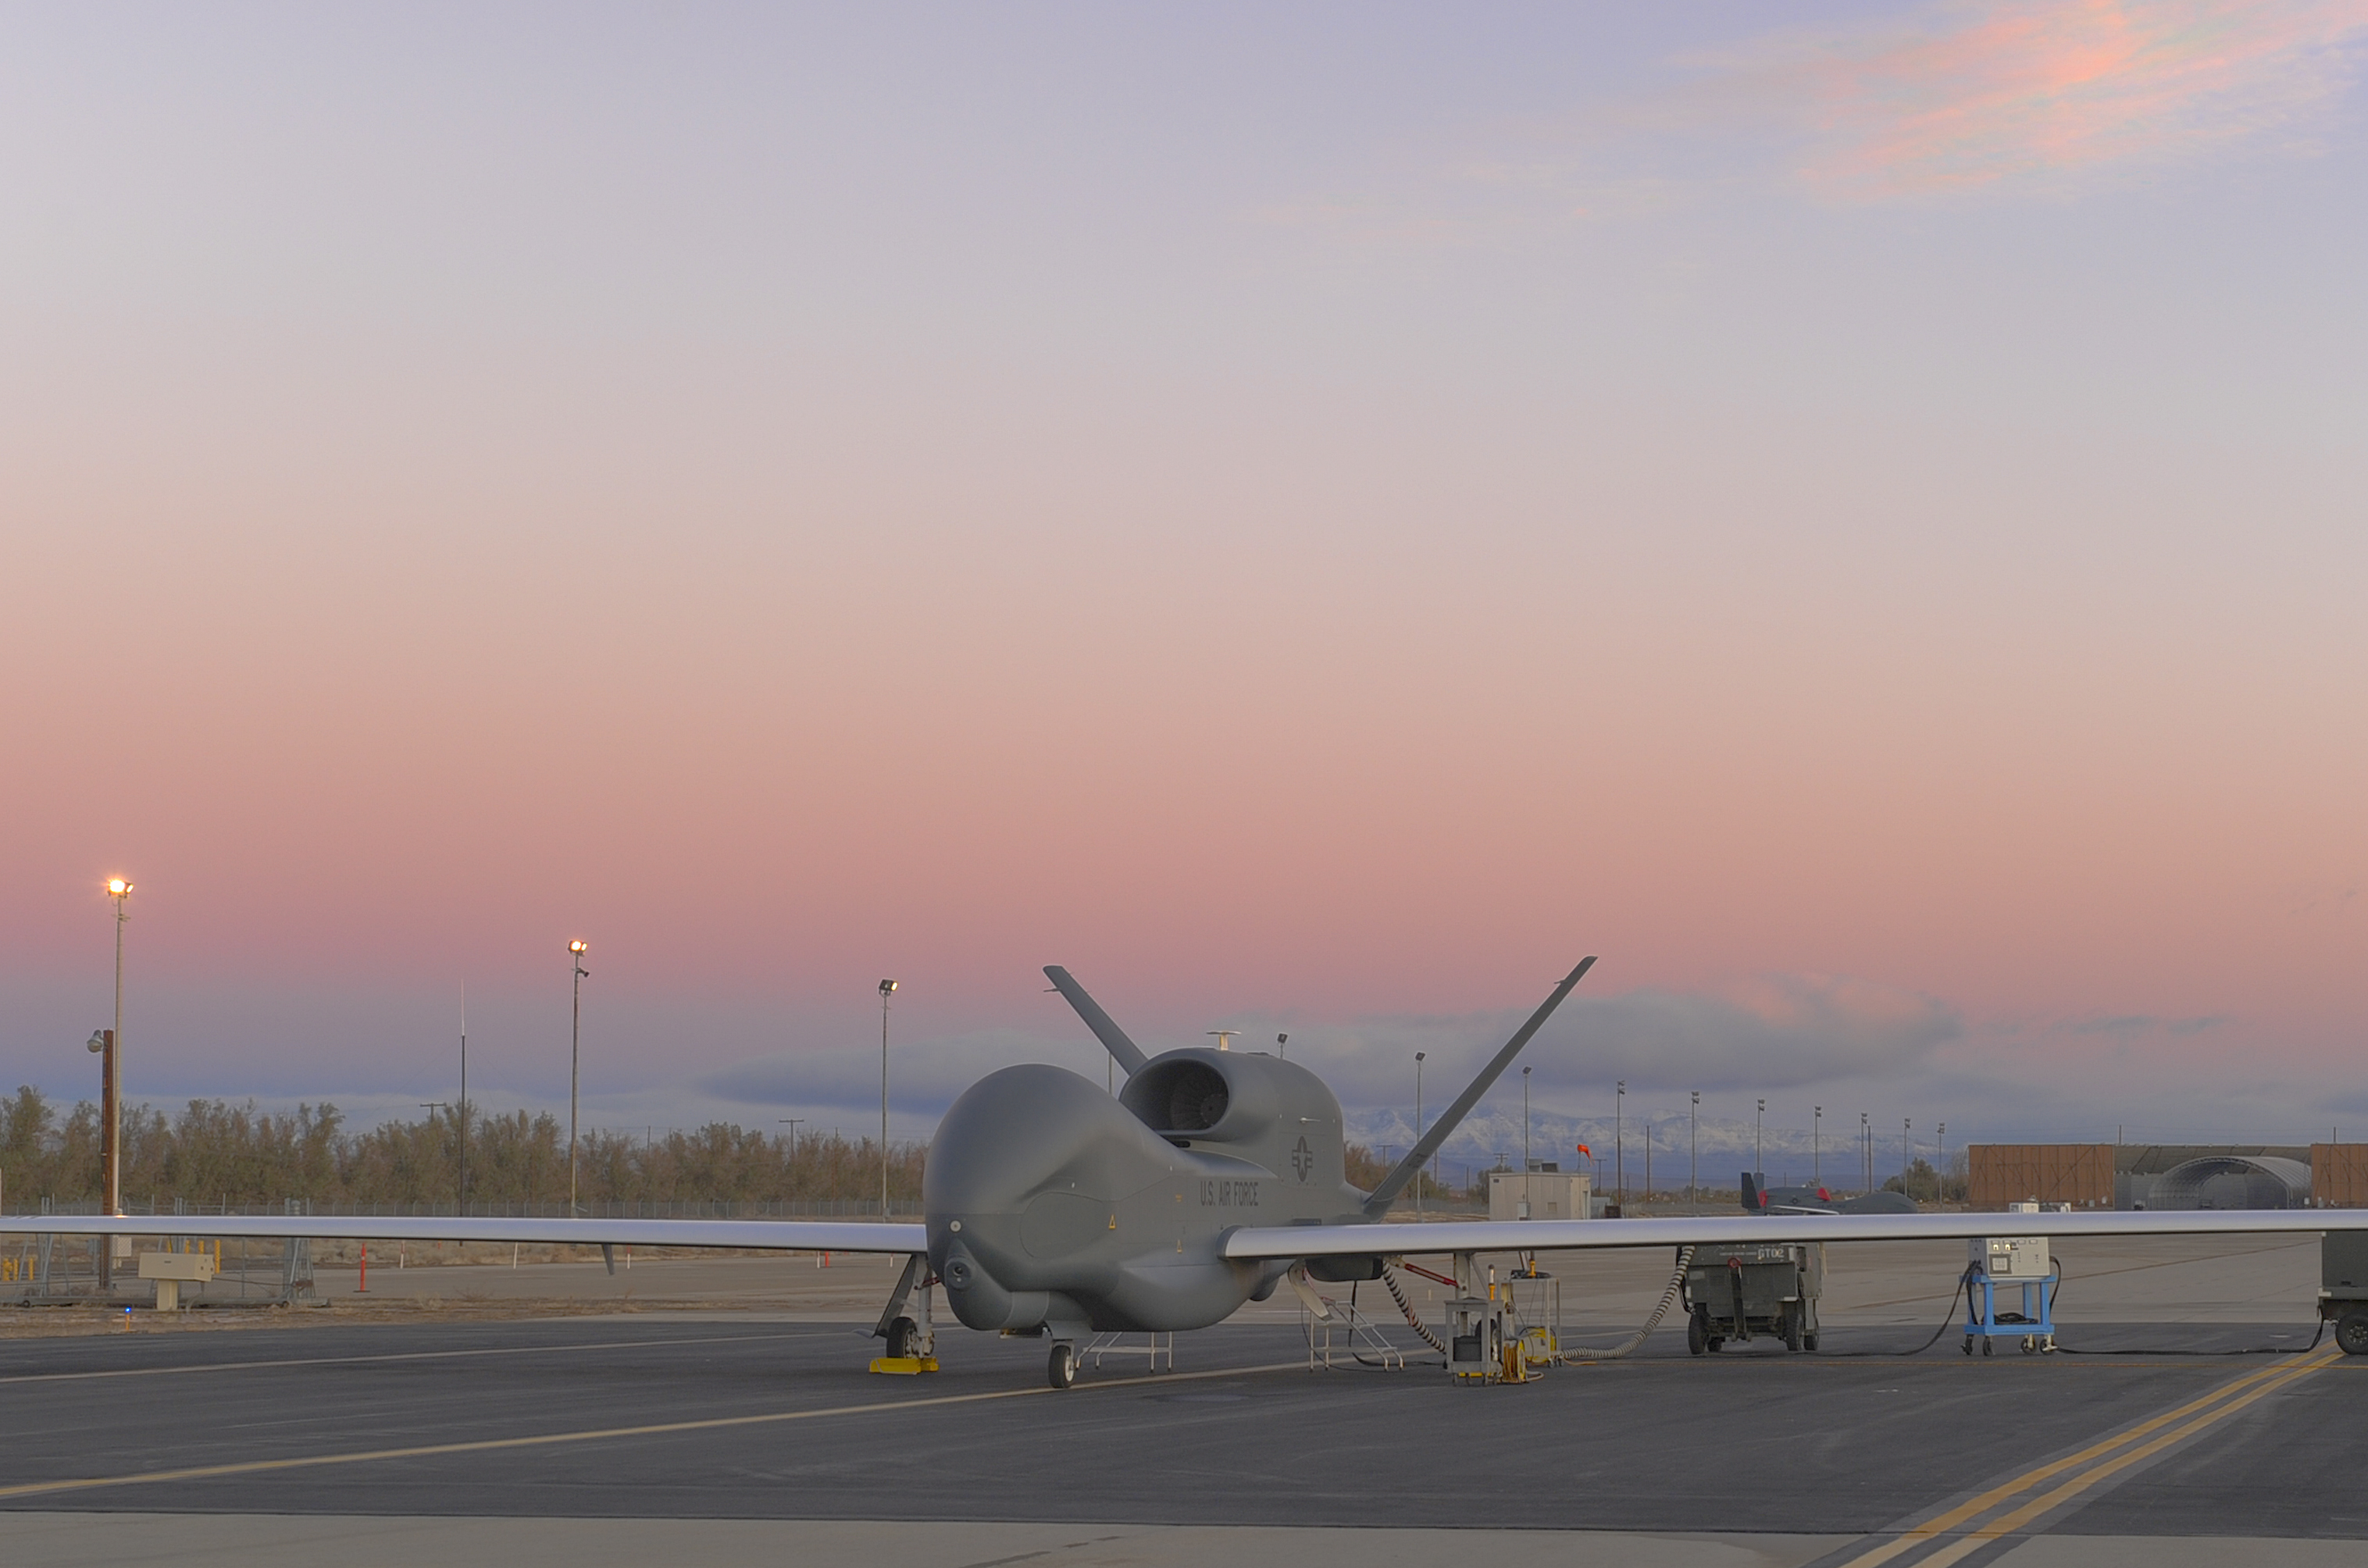 The US Air Force RQ-4B Global Hawk UAV